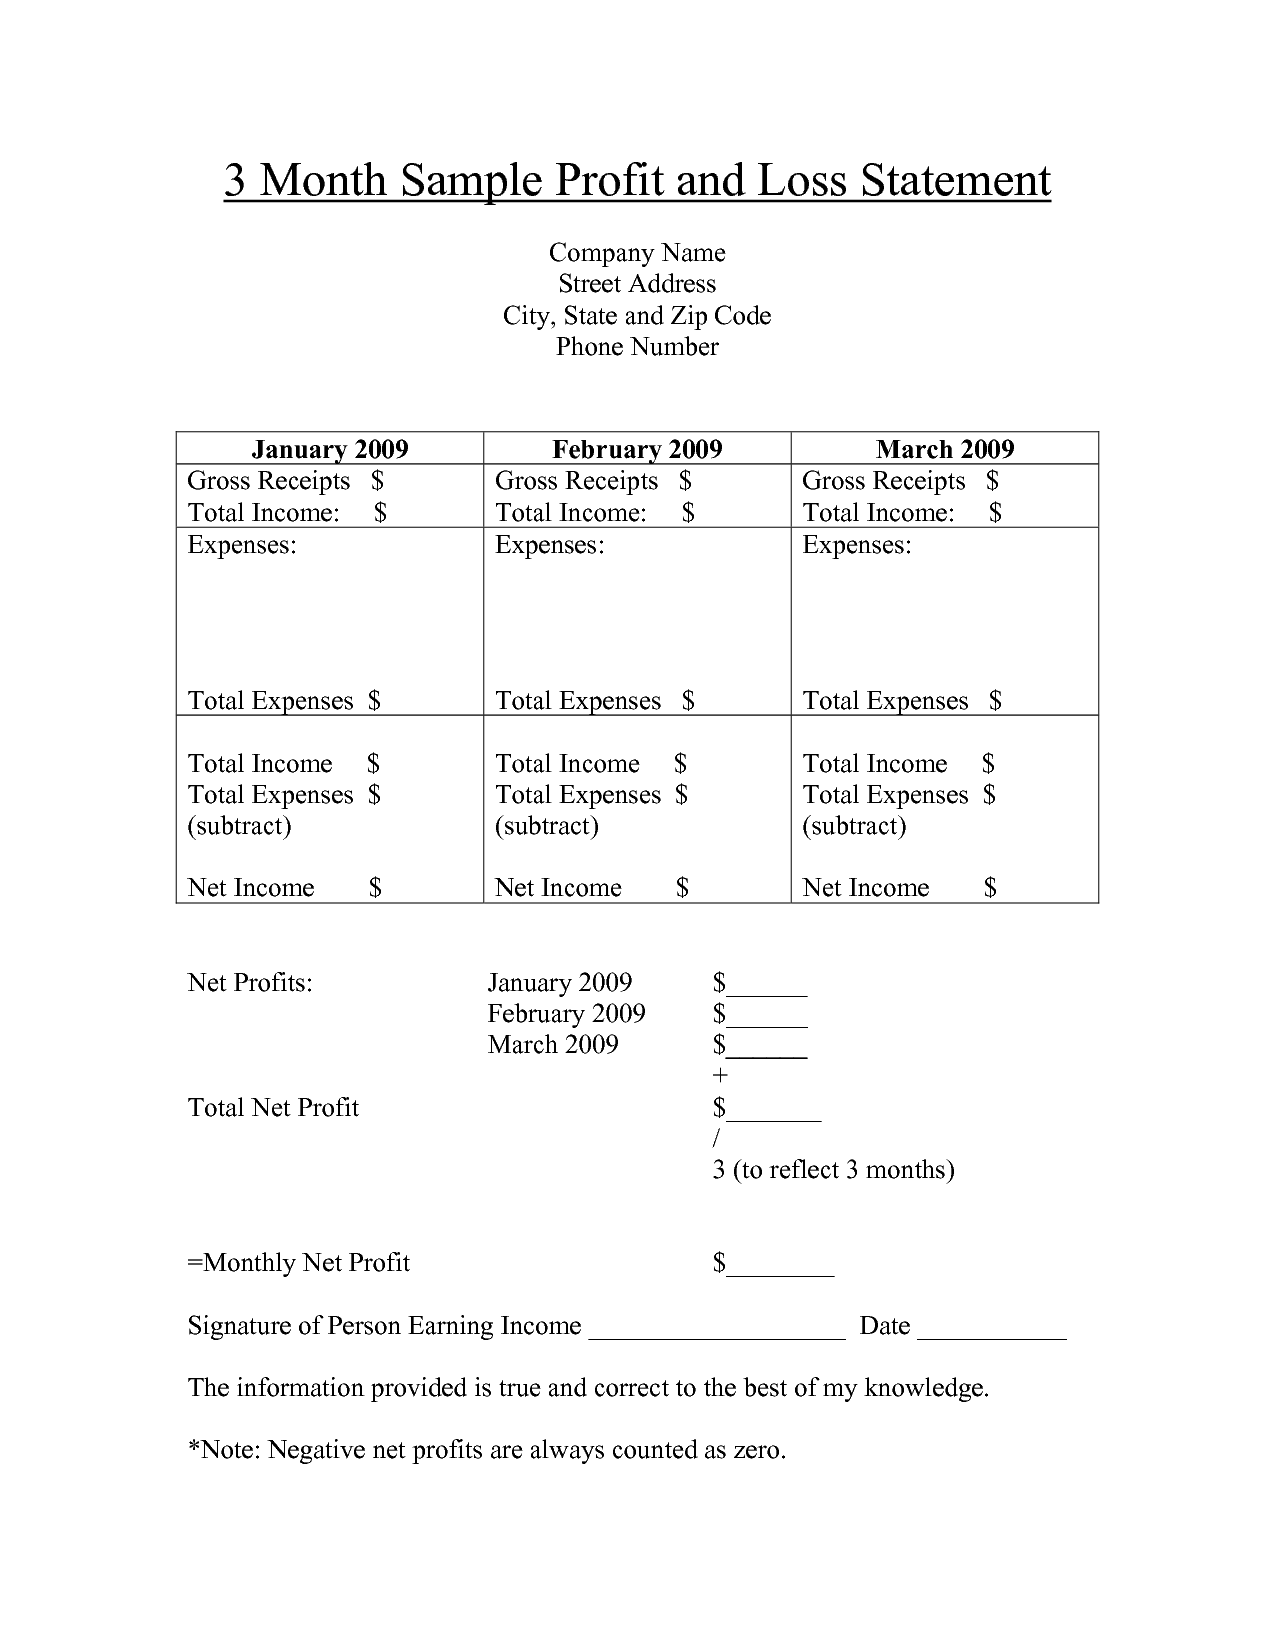 Free Printable Profit and Loss Statement Form for Home Care Bing – Sample Profit and Loss Statement